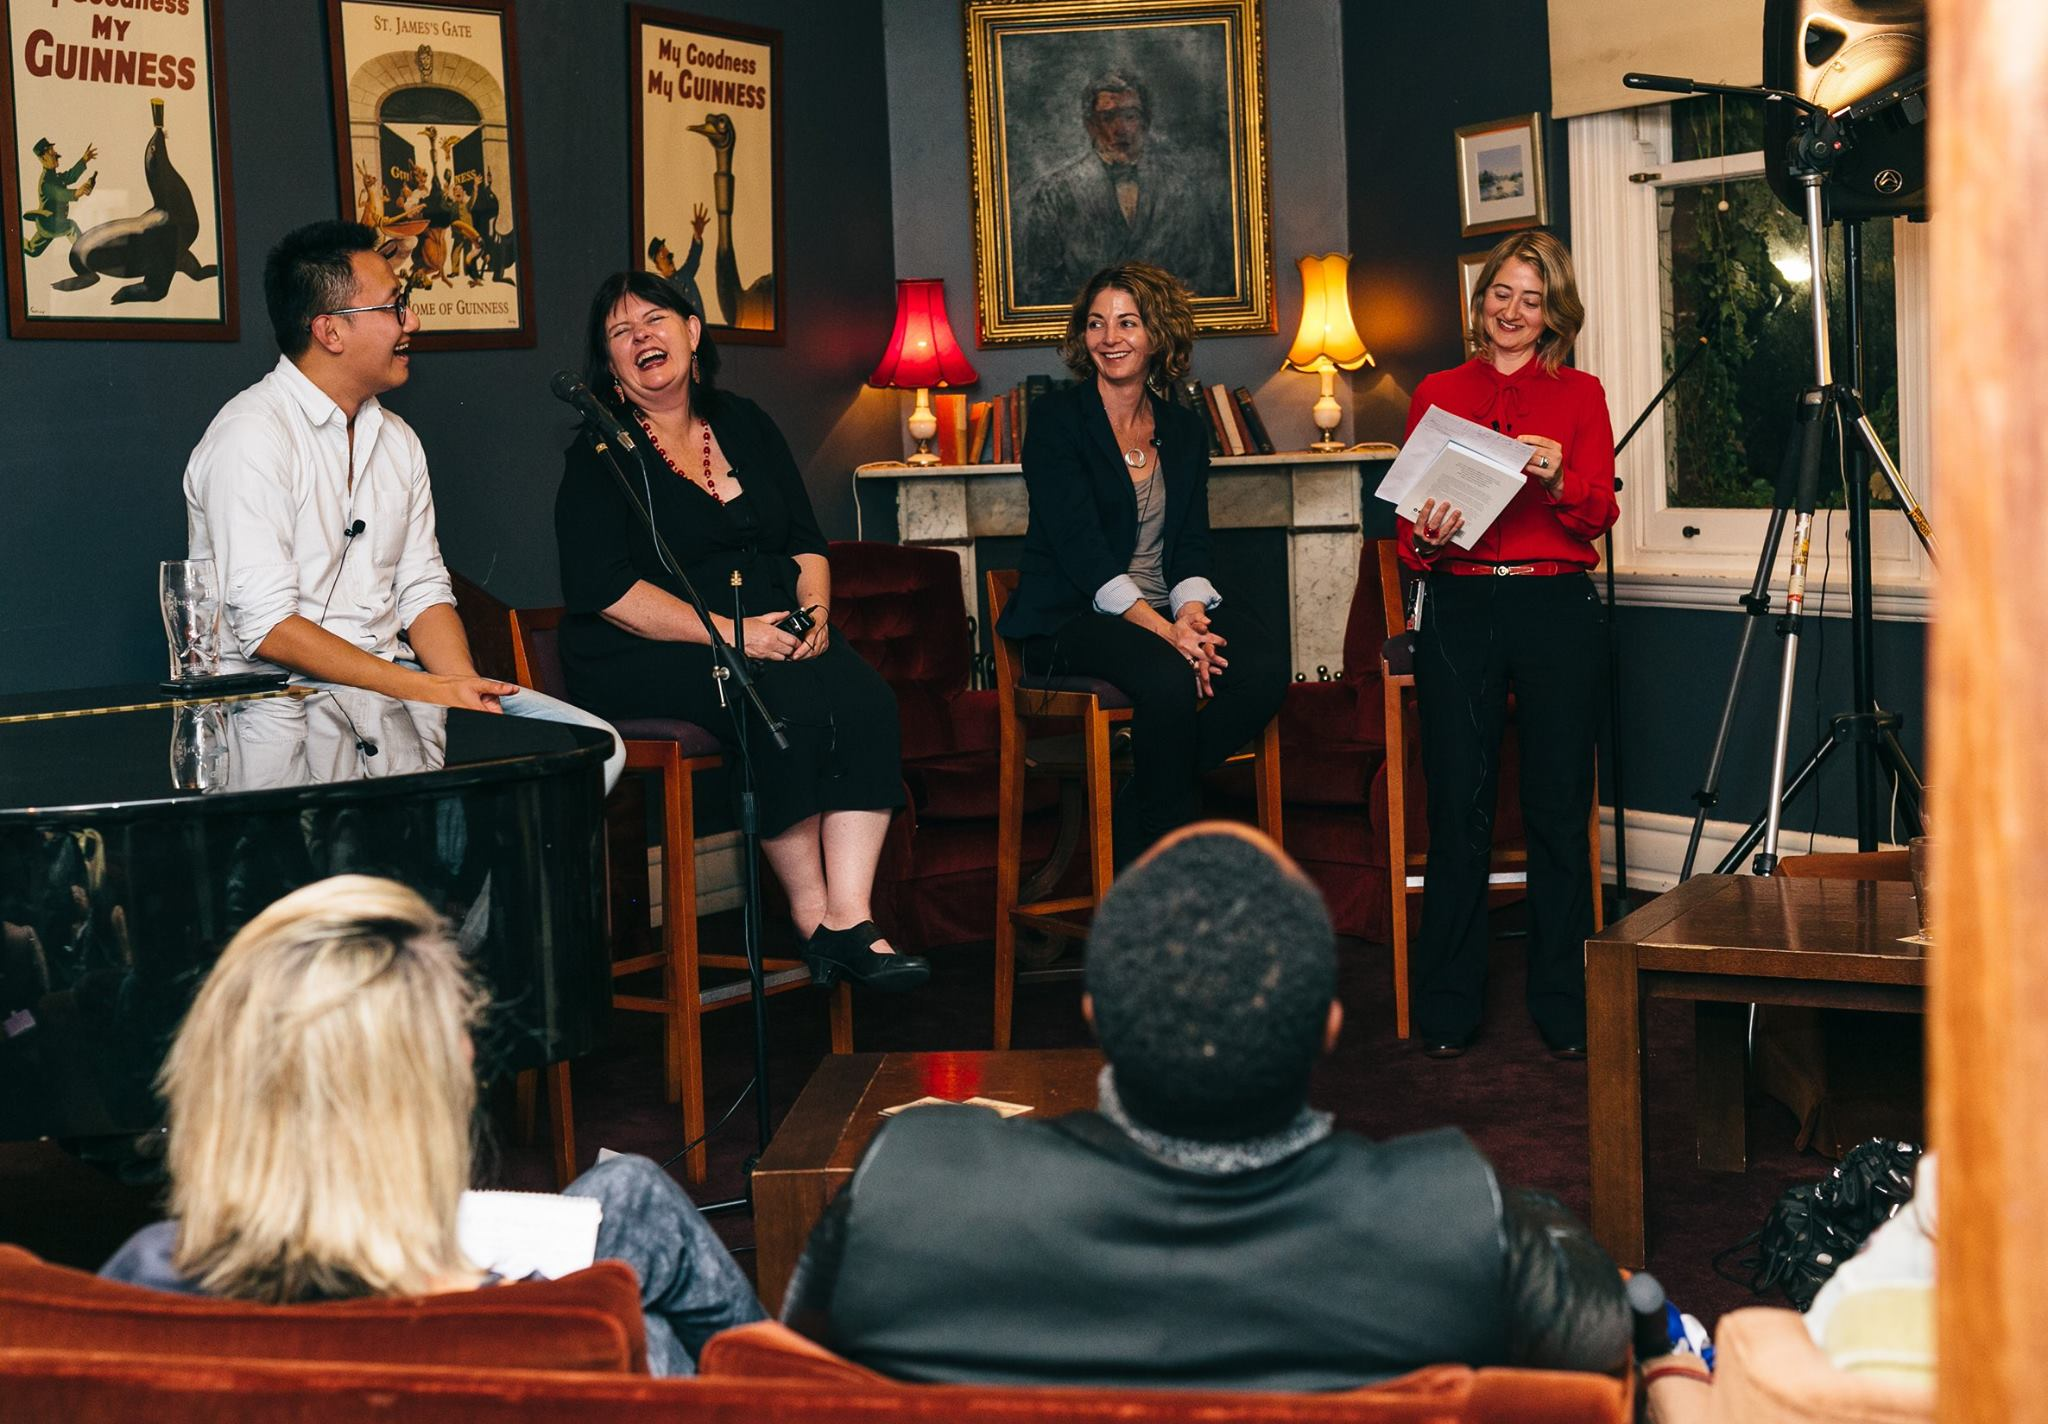 In action, Funding and Finance Panel; Rick Chen, co-founder of Pozible, Lisa Cahill, Director of Australian Design Centre, Noga Edelstein, co-founder of Urban Outsource, and yours truly, founder of Mama Creatives facilitating the discussion